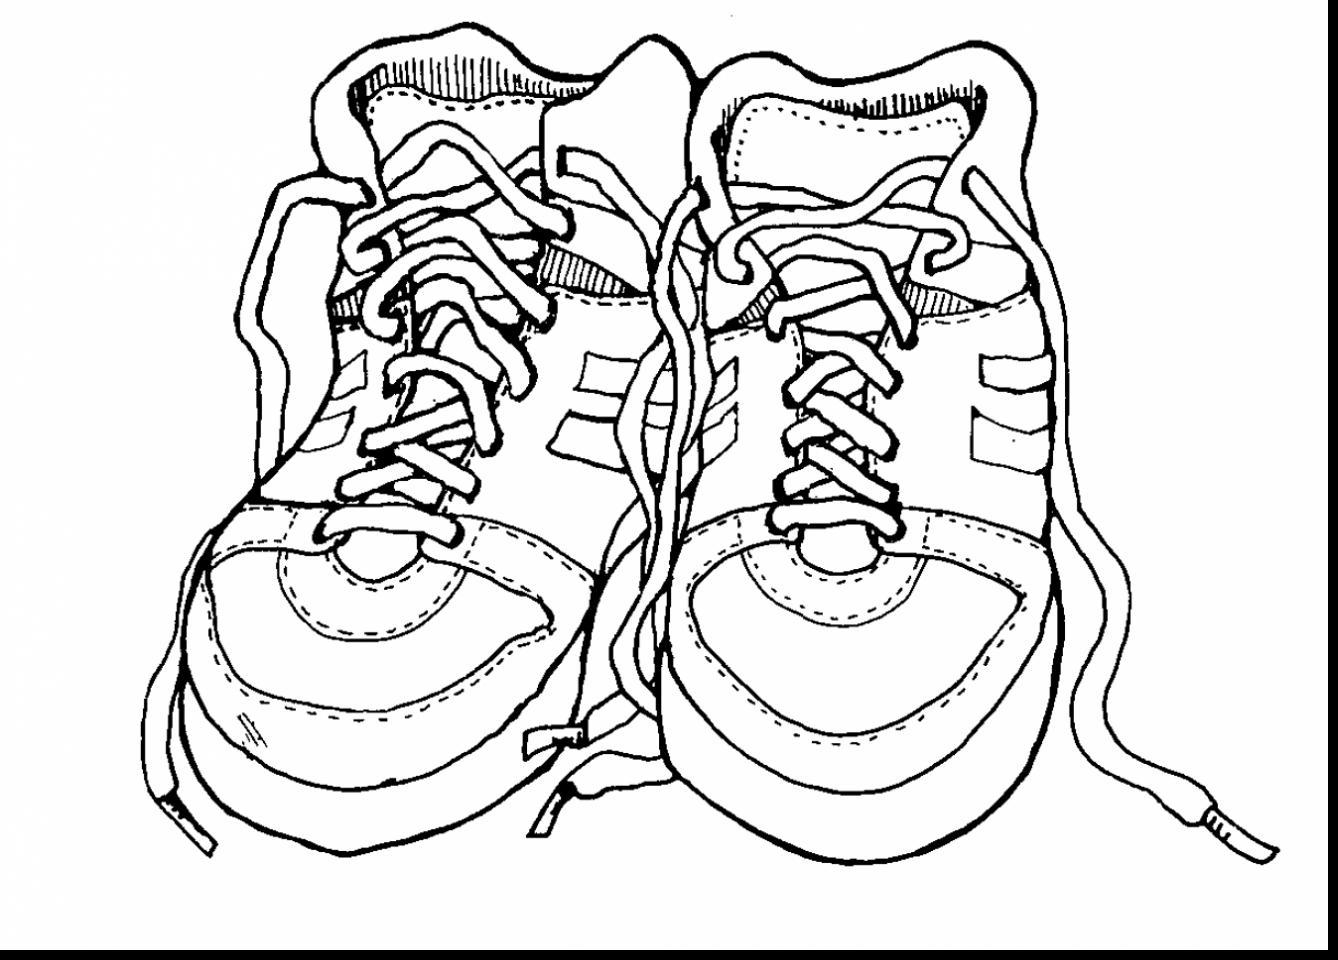 kd coloring pages drawings of kd shoes free download on clipartmag coloring kd pages